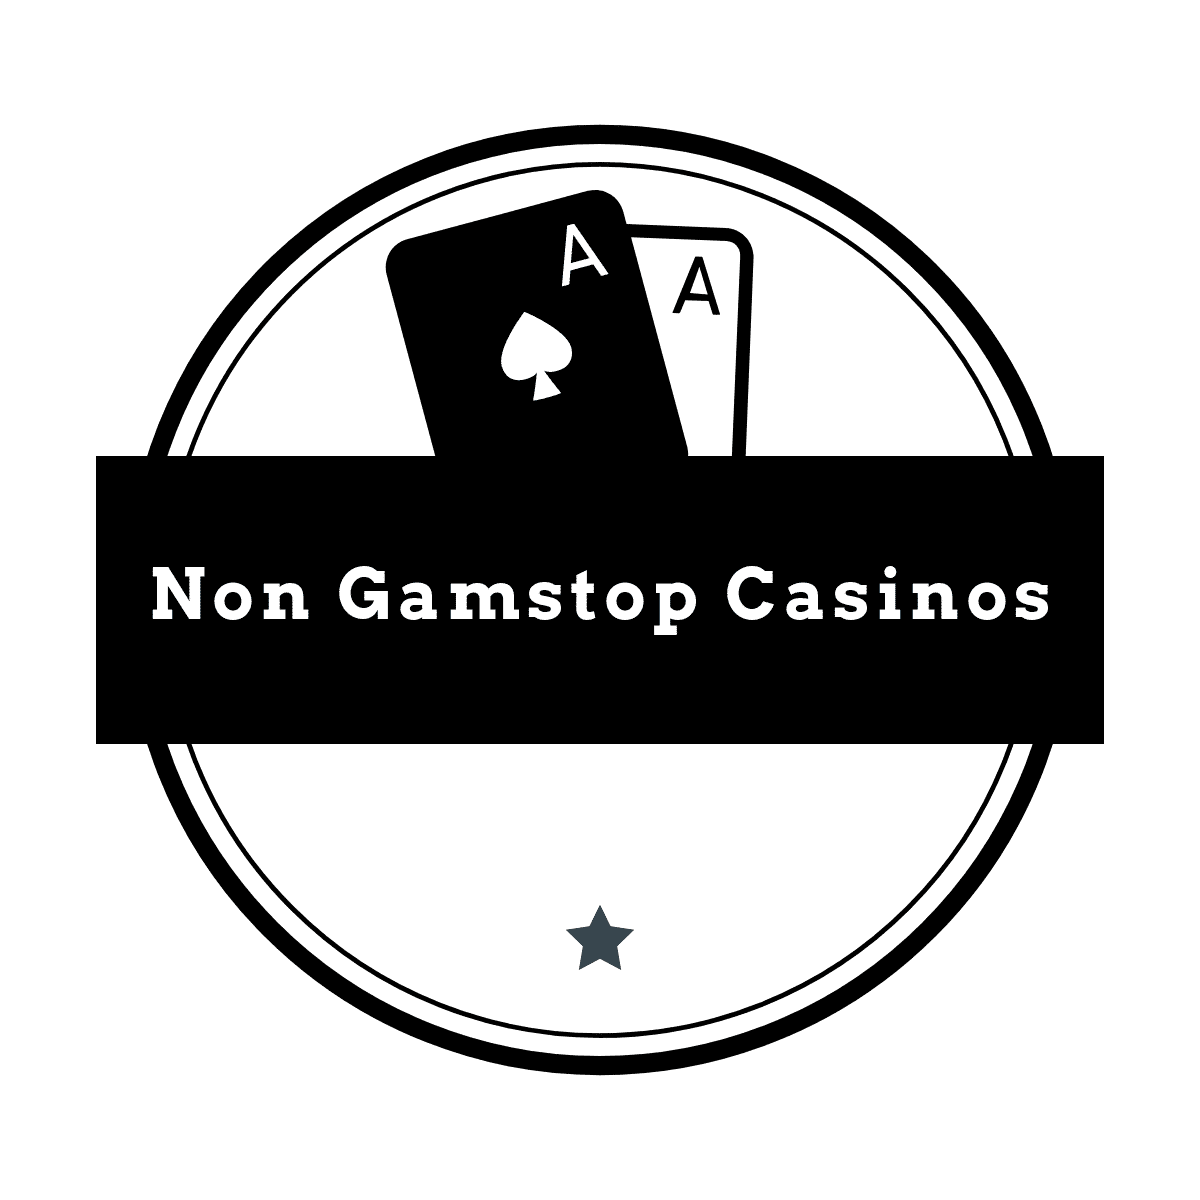 Best Non Gamstop Casinos UK